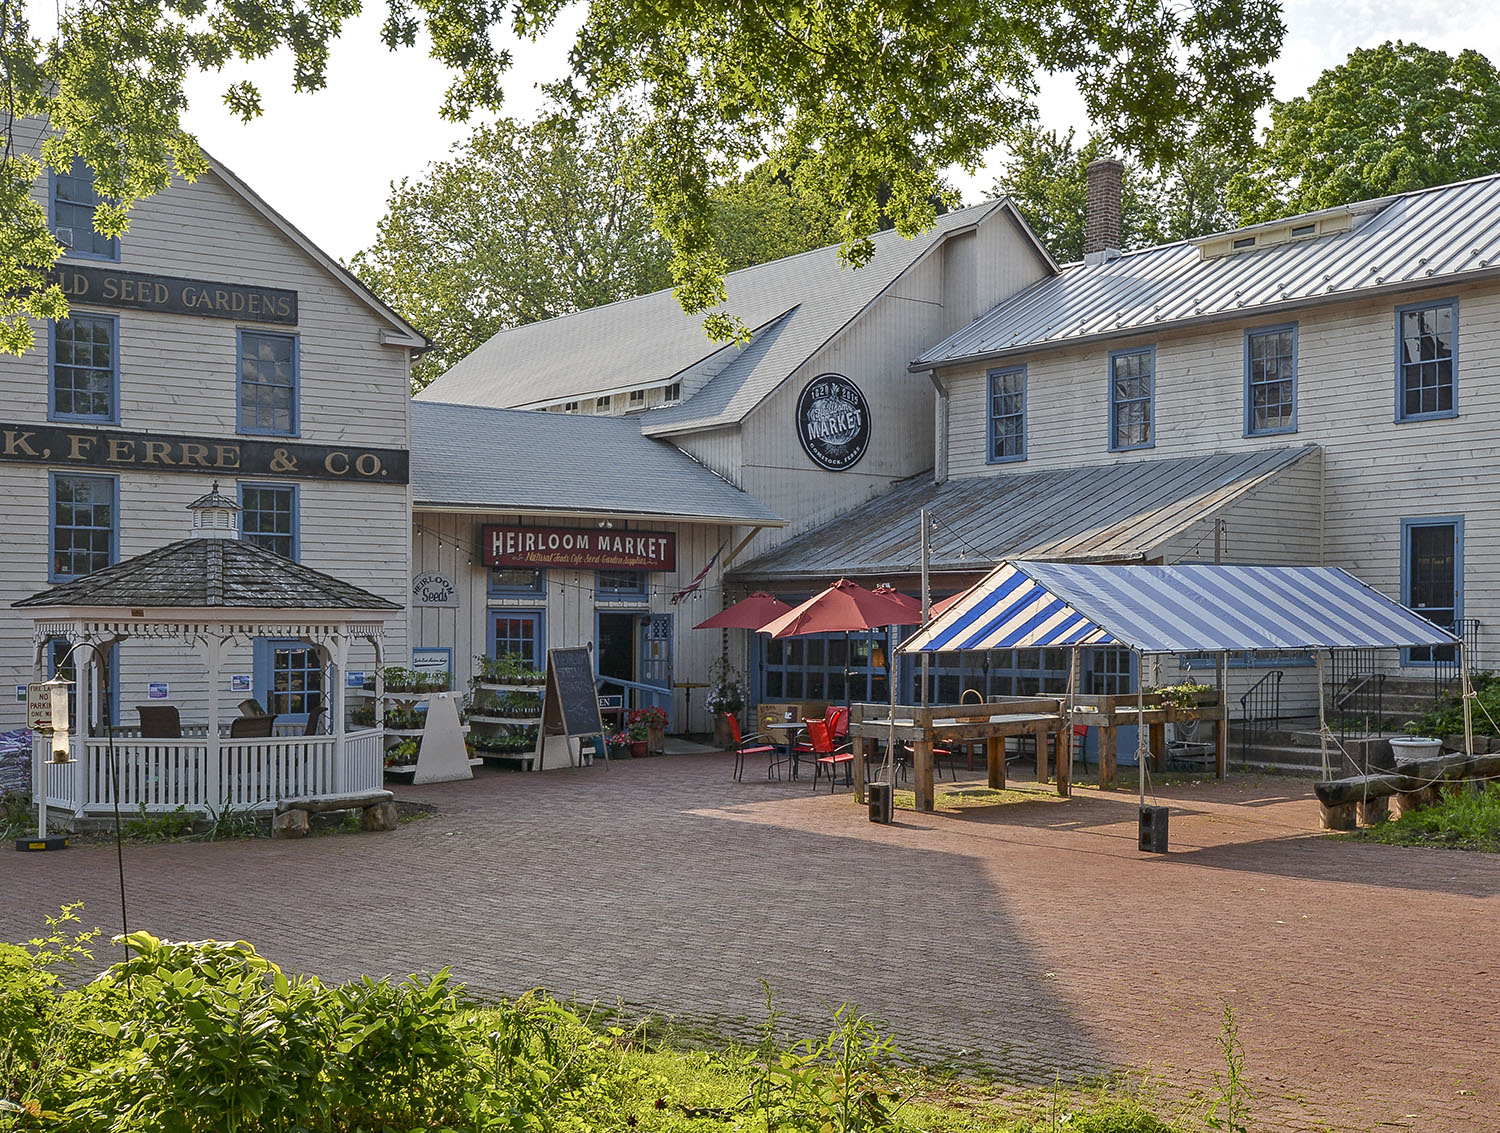 Nearby: Heirloom Market at Comstock Ferre